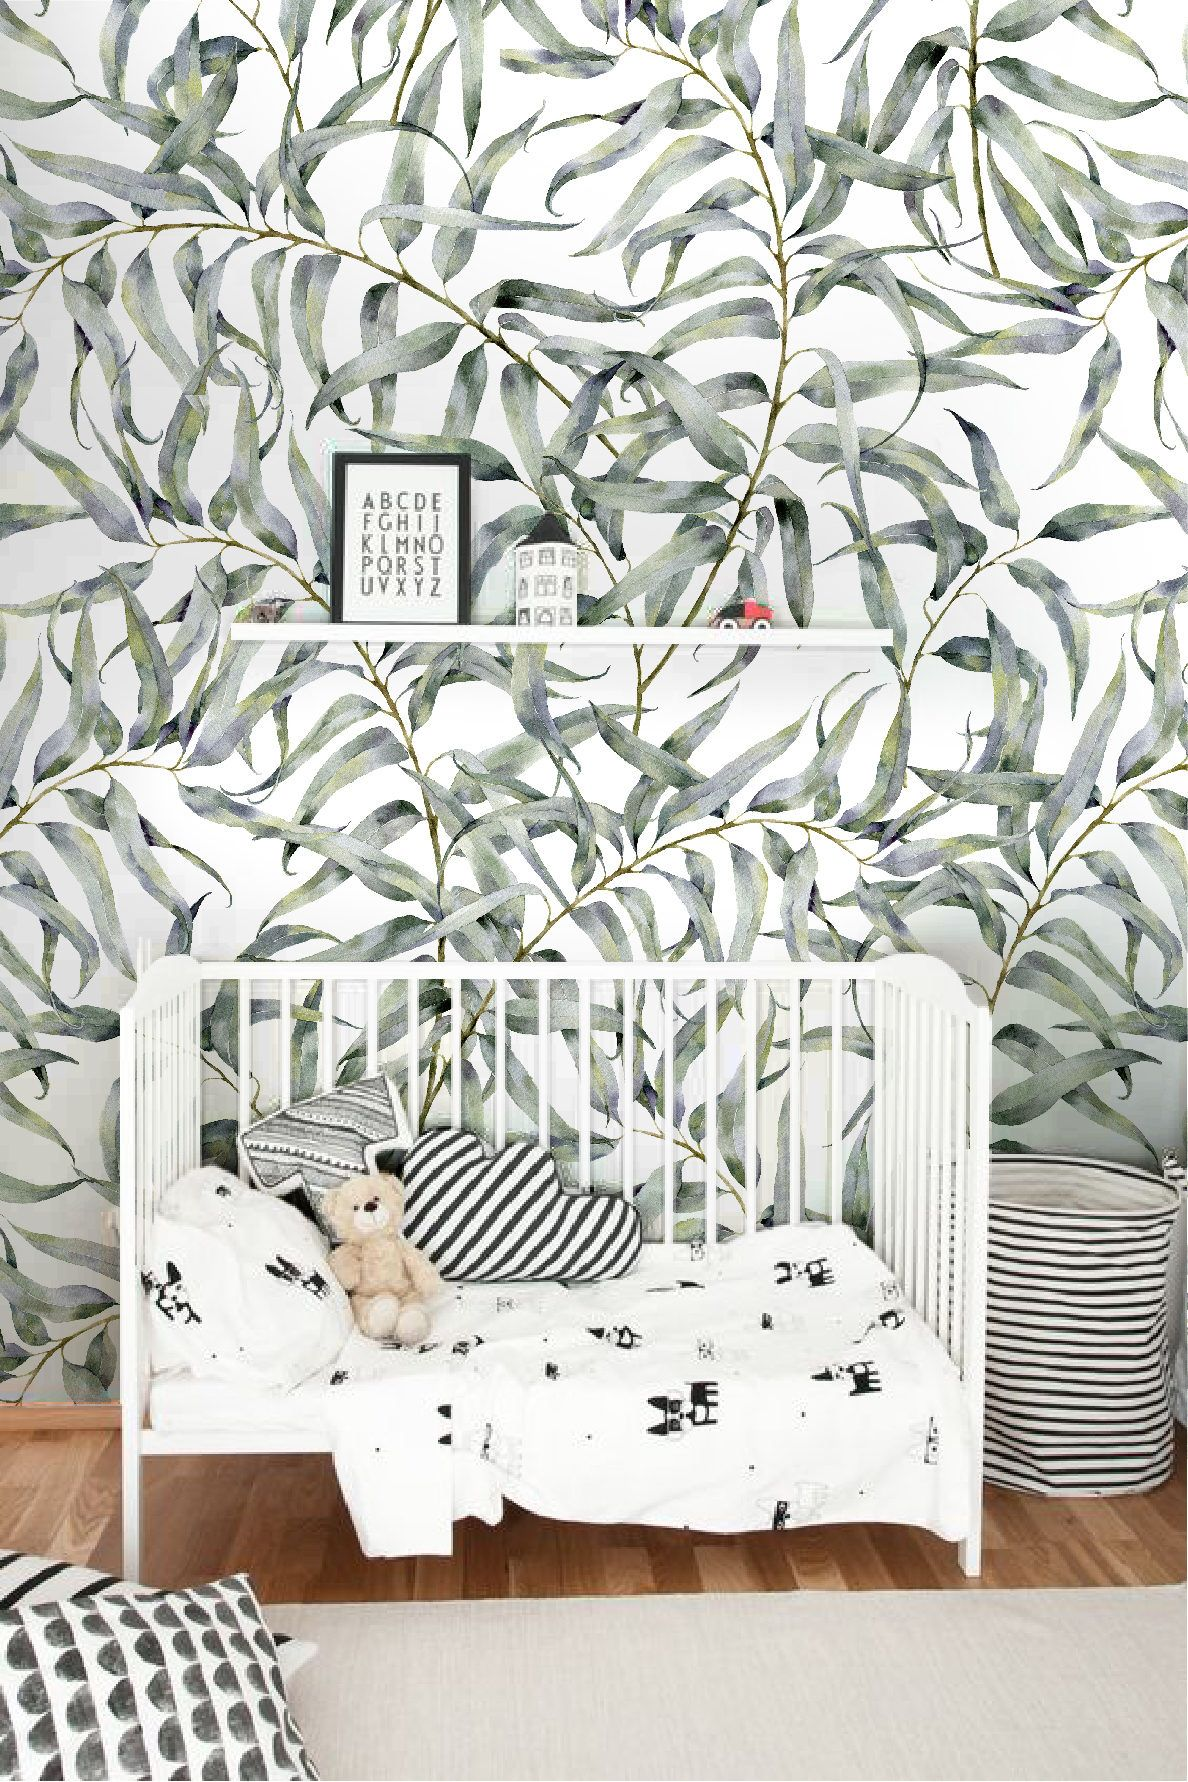 Eucalyptus leaf removable wallpaper jungle temporary wallpaper renters friendly wallpaper peel and stick